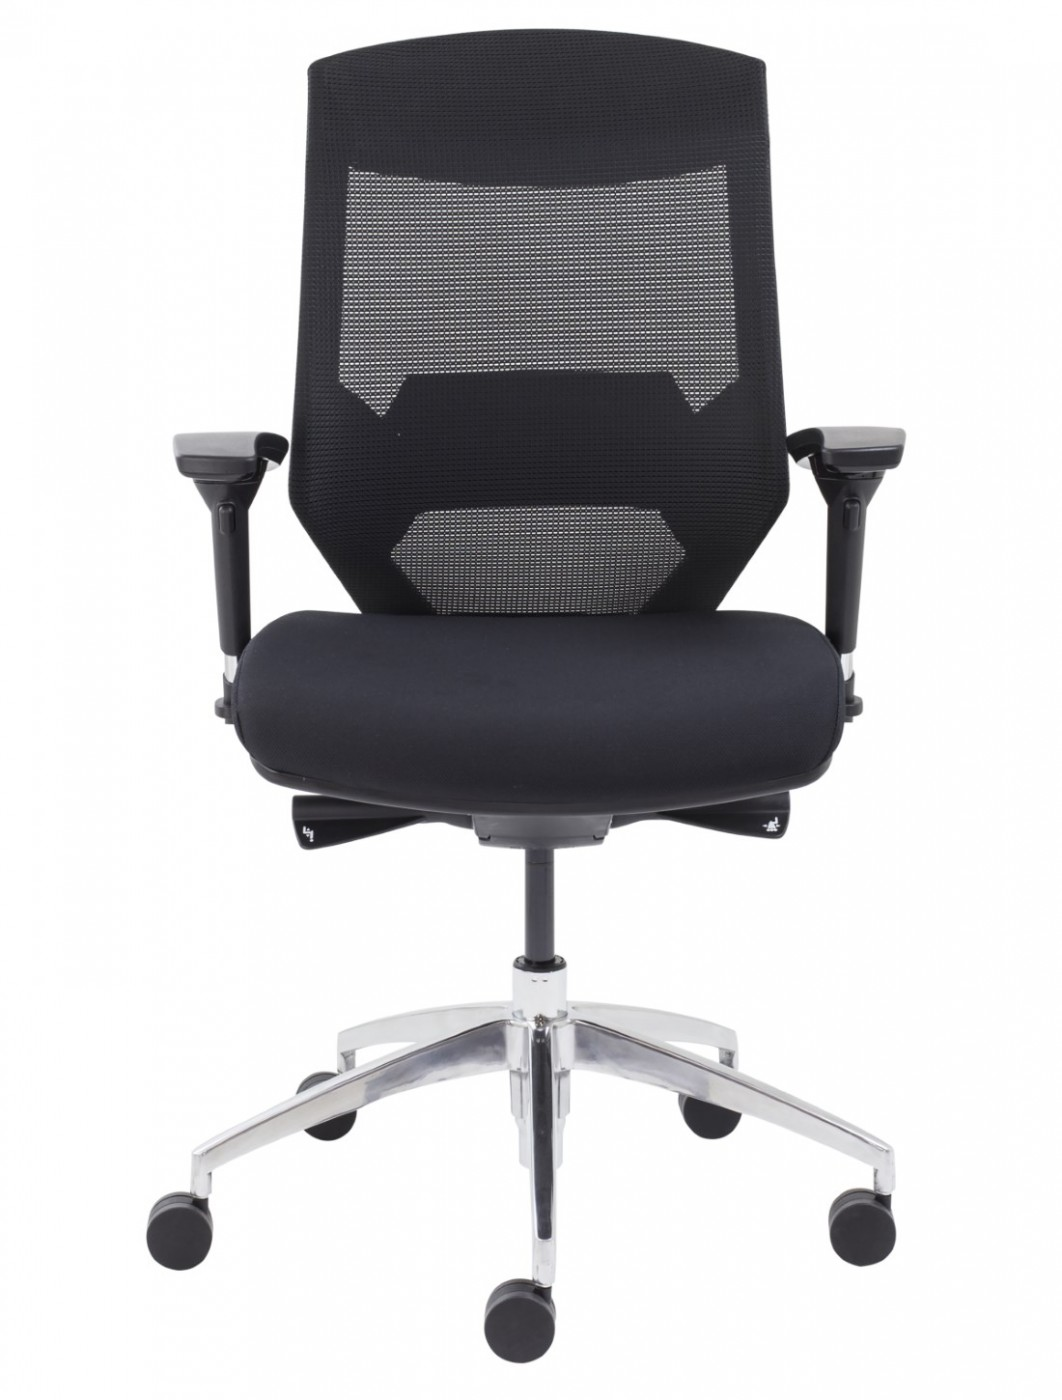 Office Chairs - TC Vogue Mesh Office Chair CH2622BK